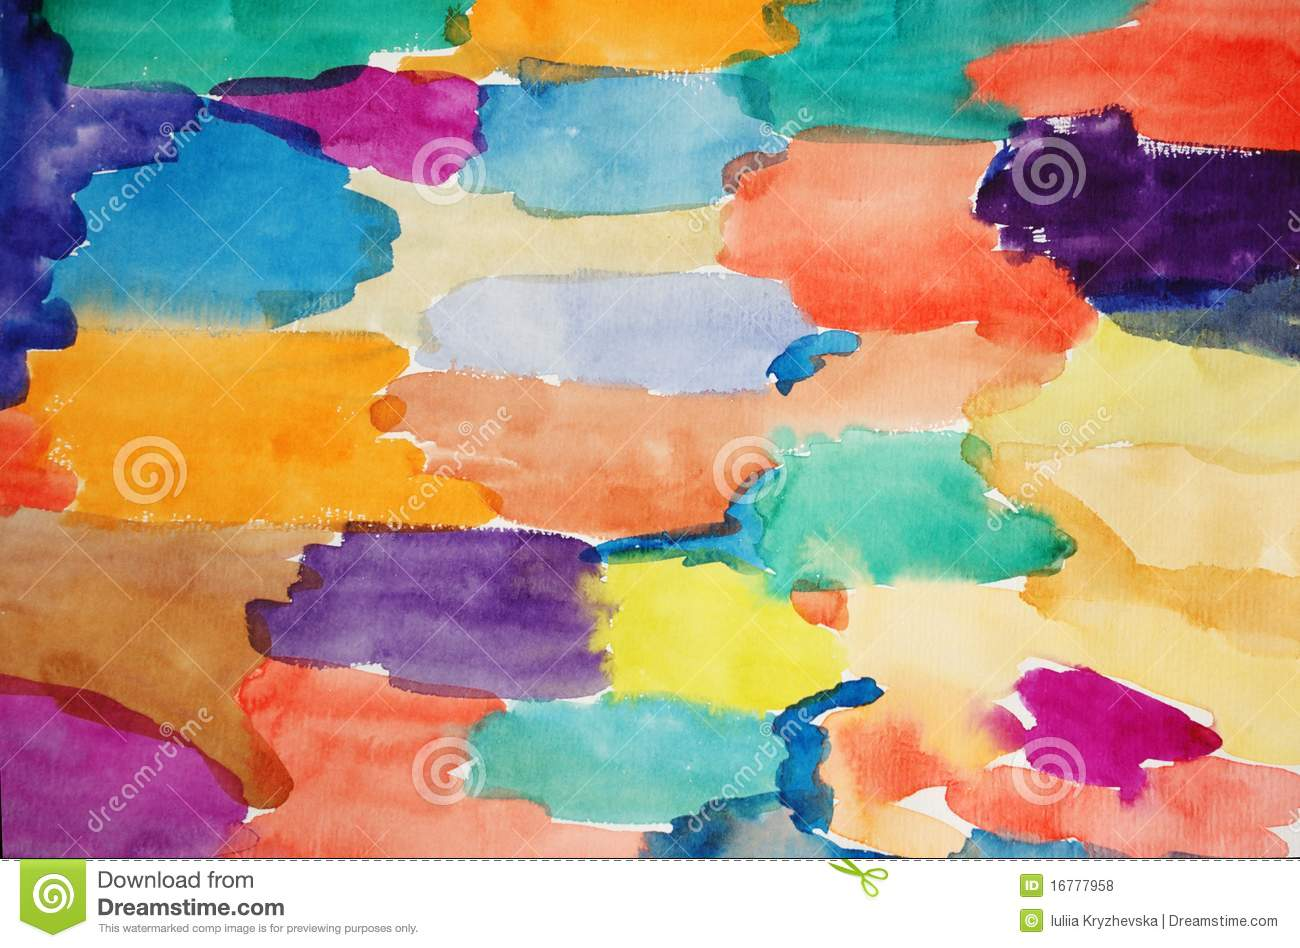 Watercolor hand painted art background